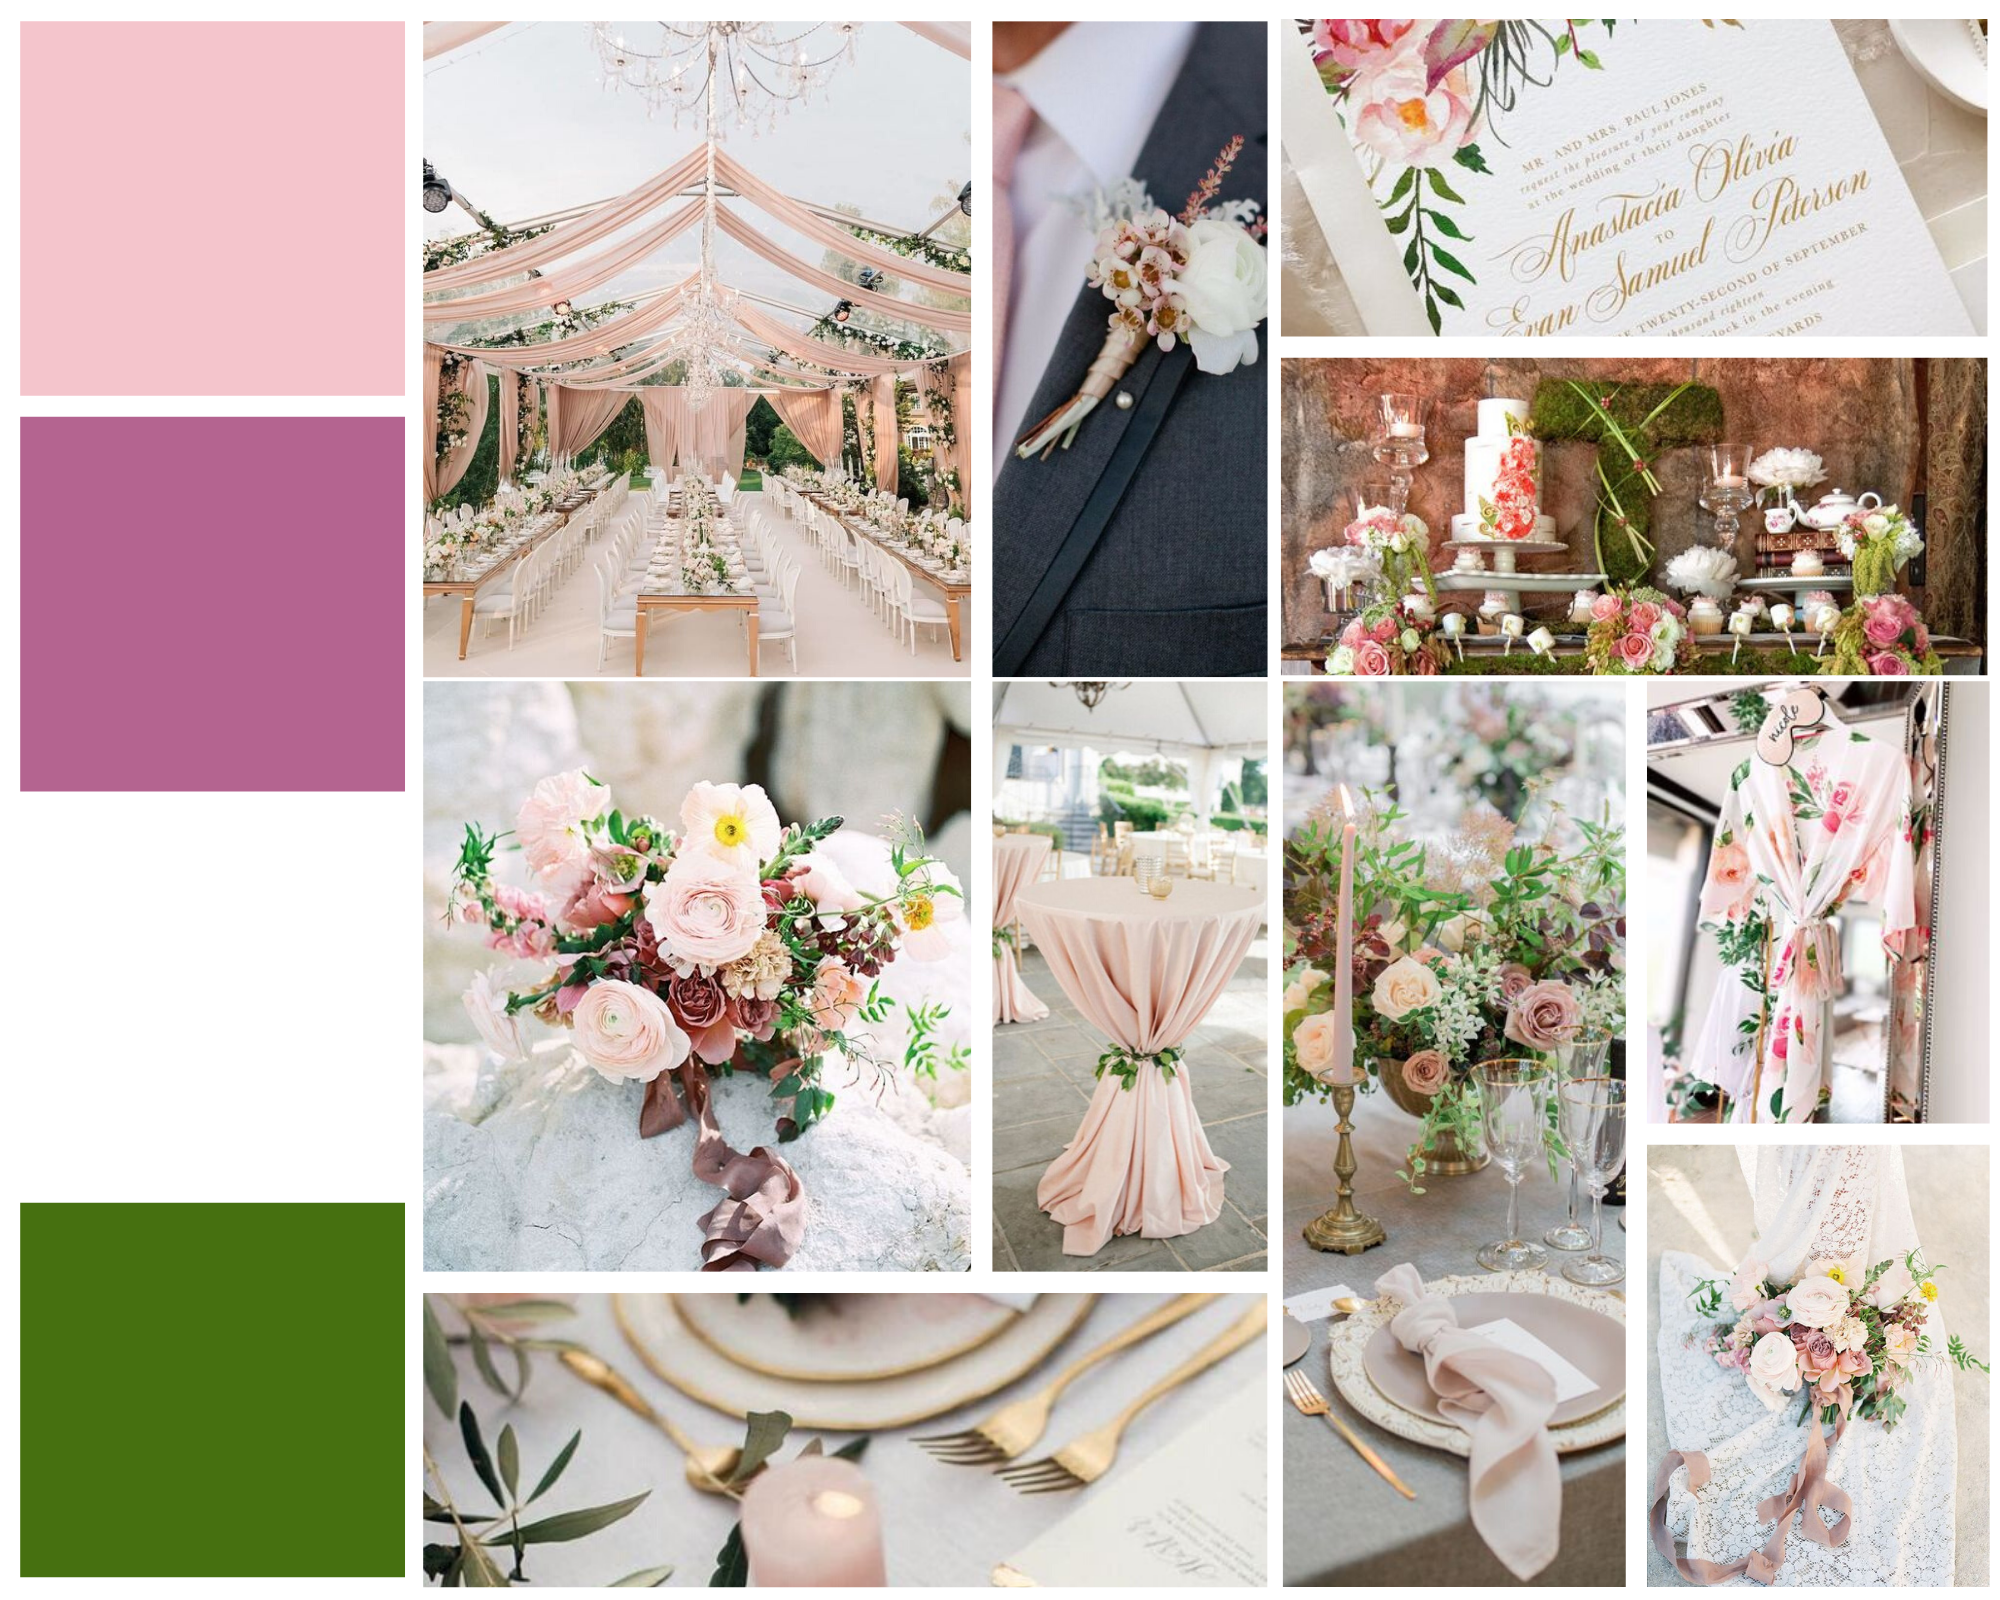 wedding mood board with pink and green